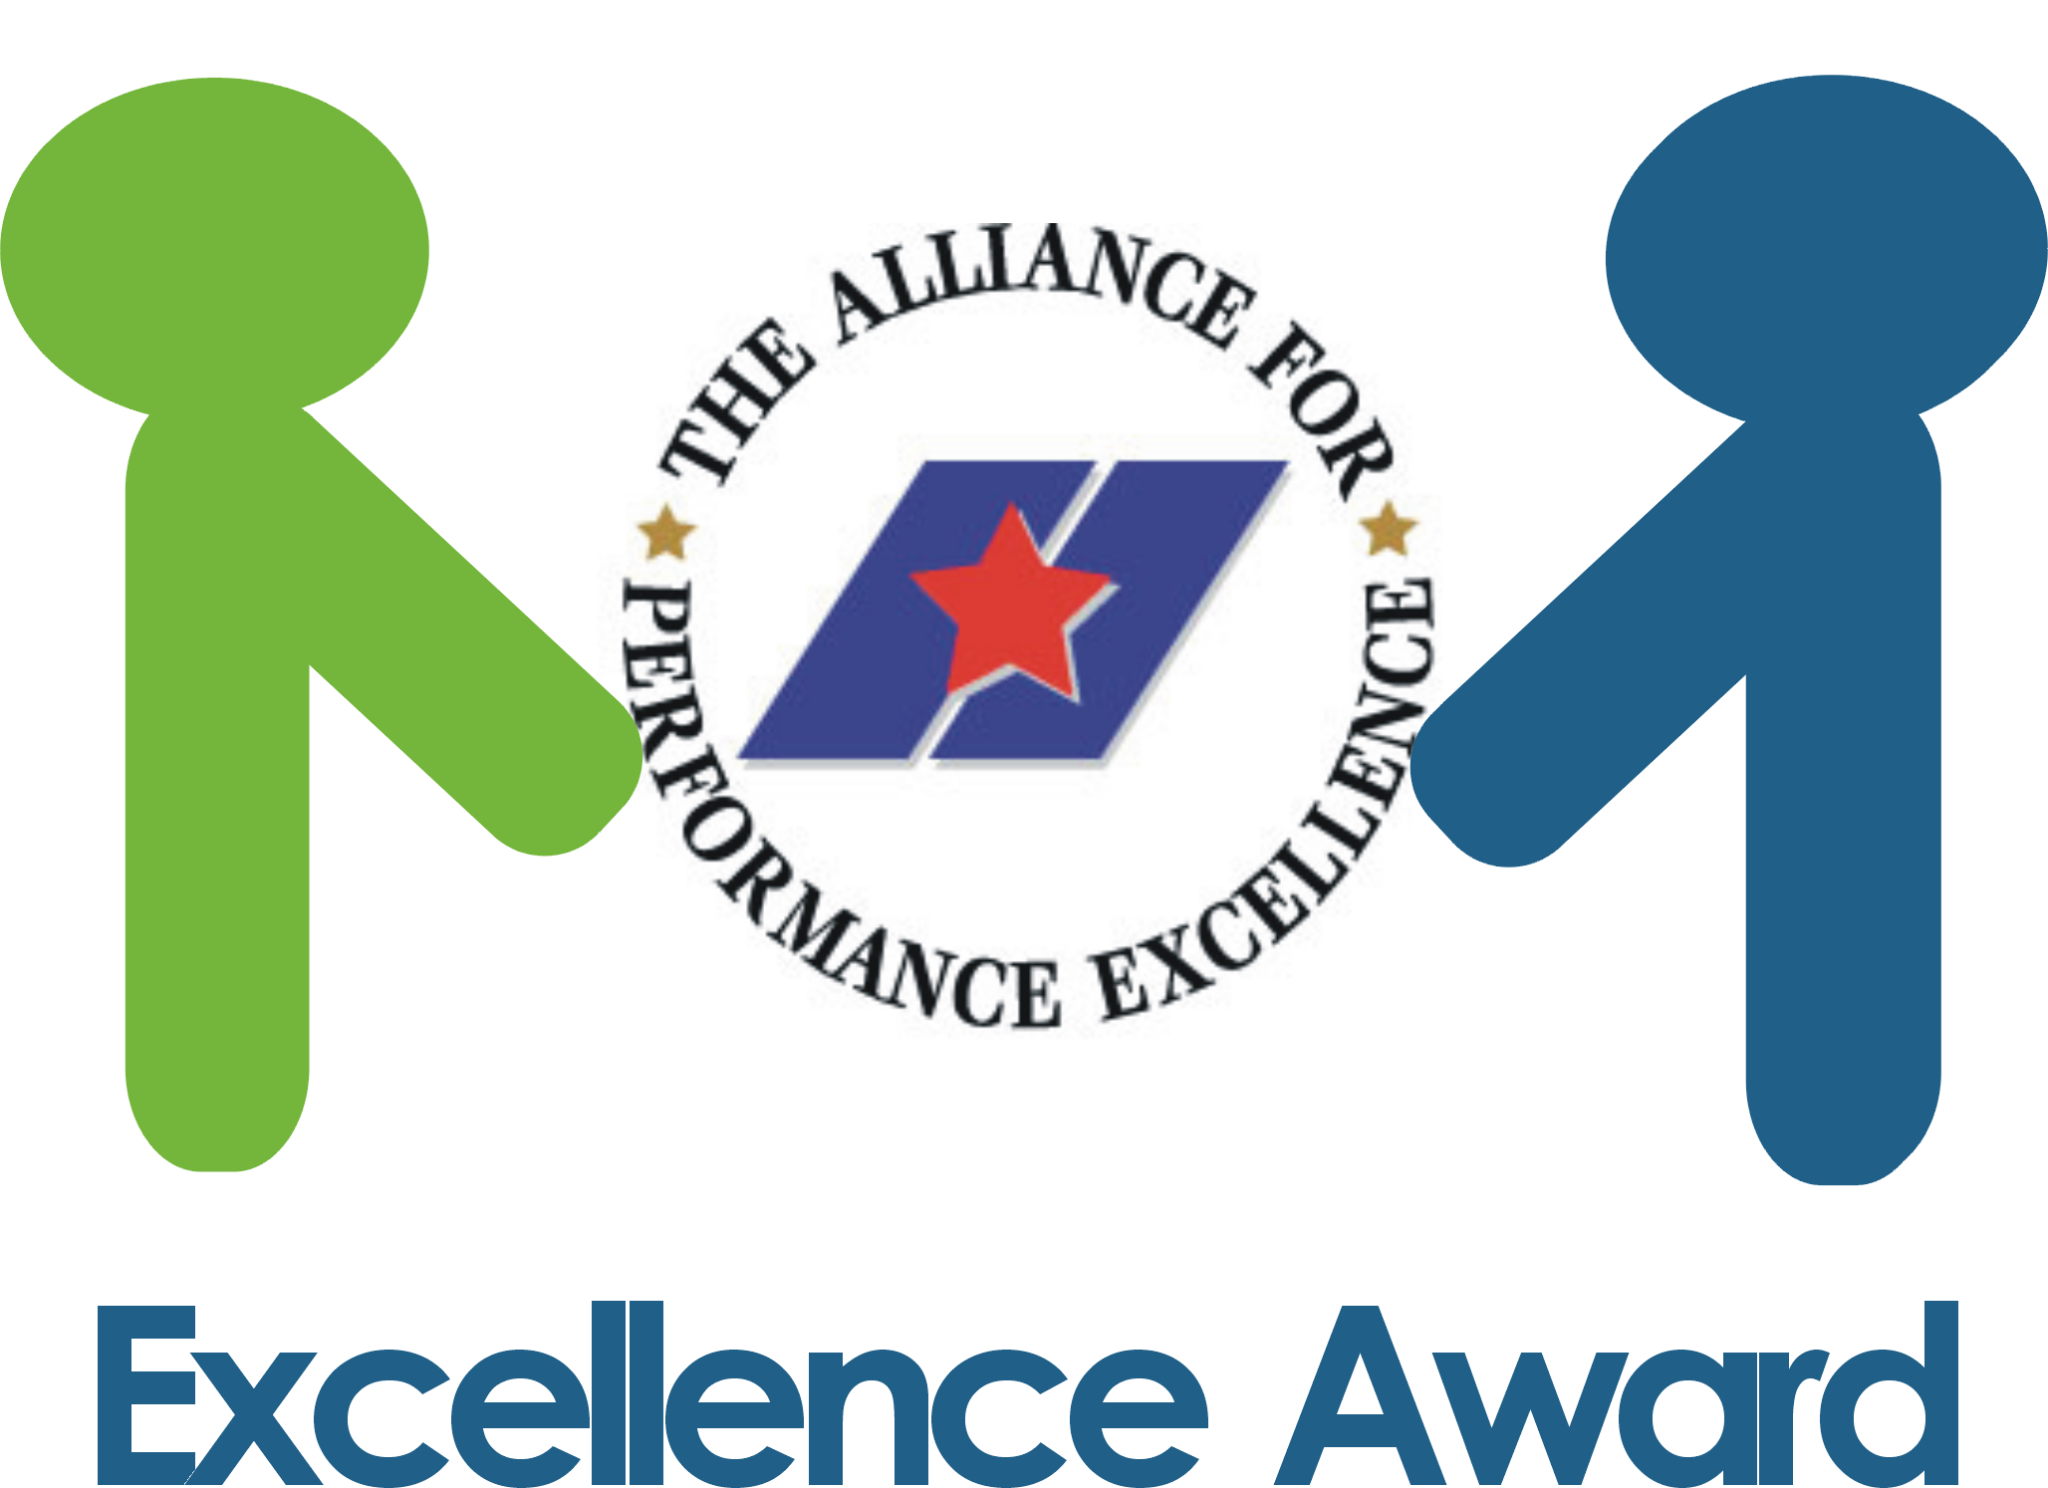 EARN RECOGNITION FROM THE ALLIANCE FOR PERFORMANCE EXCELLENCE